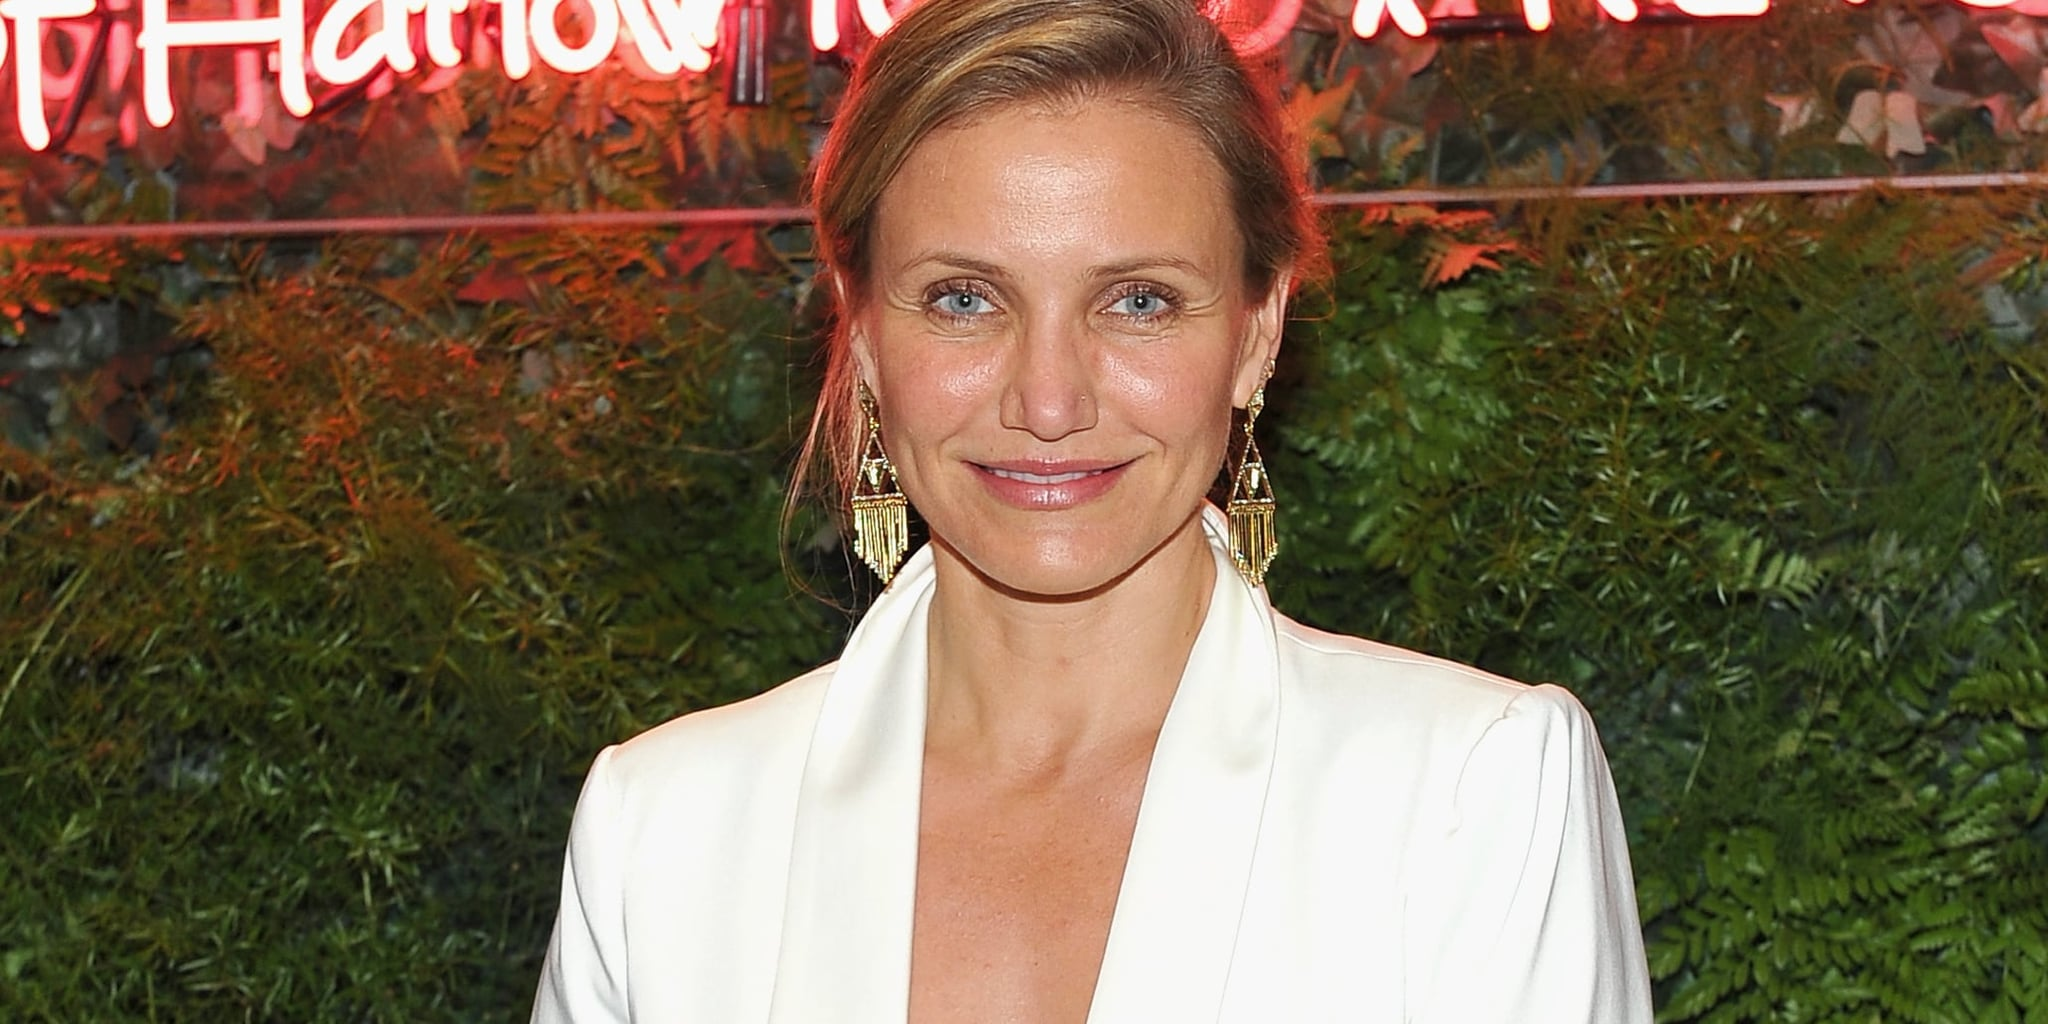 Cameron Diaz Is Spotted For the First Time Since Welcoming Daughter Raddix